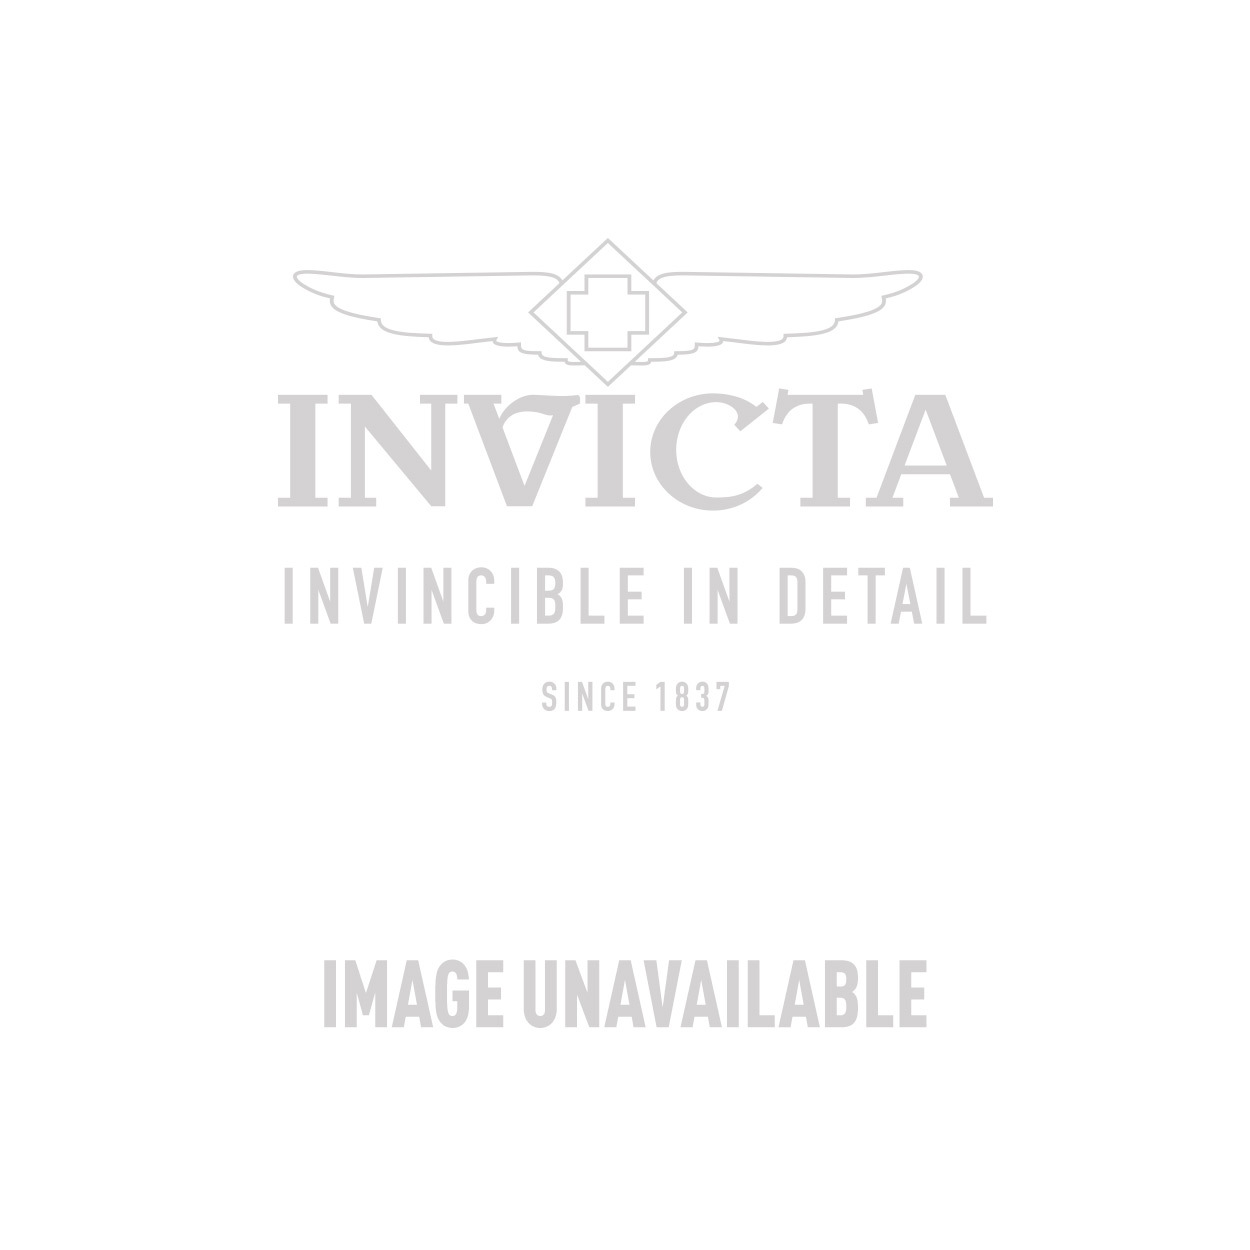 Invicta Reserve Swiss Made Quartz Watch - Rose Gold, Black case with Rose Gold, Black tone Stainless Steel band - Model 13718